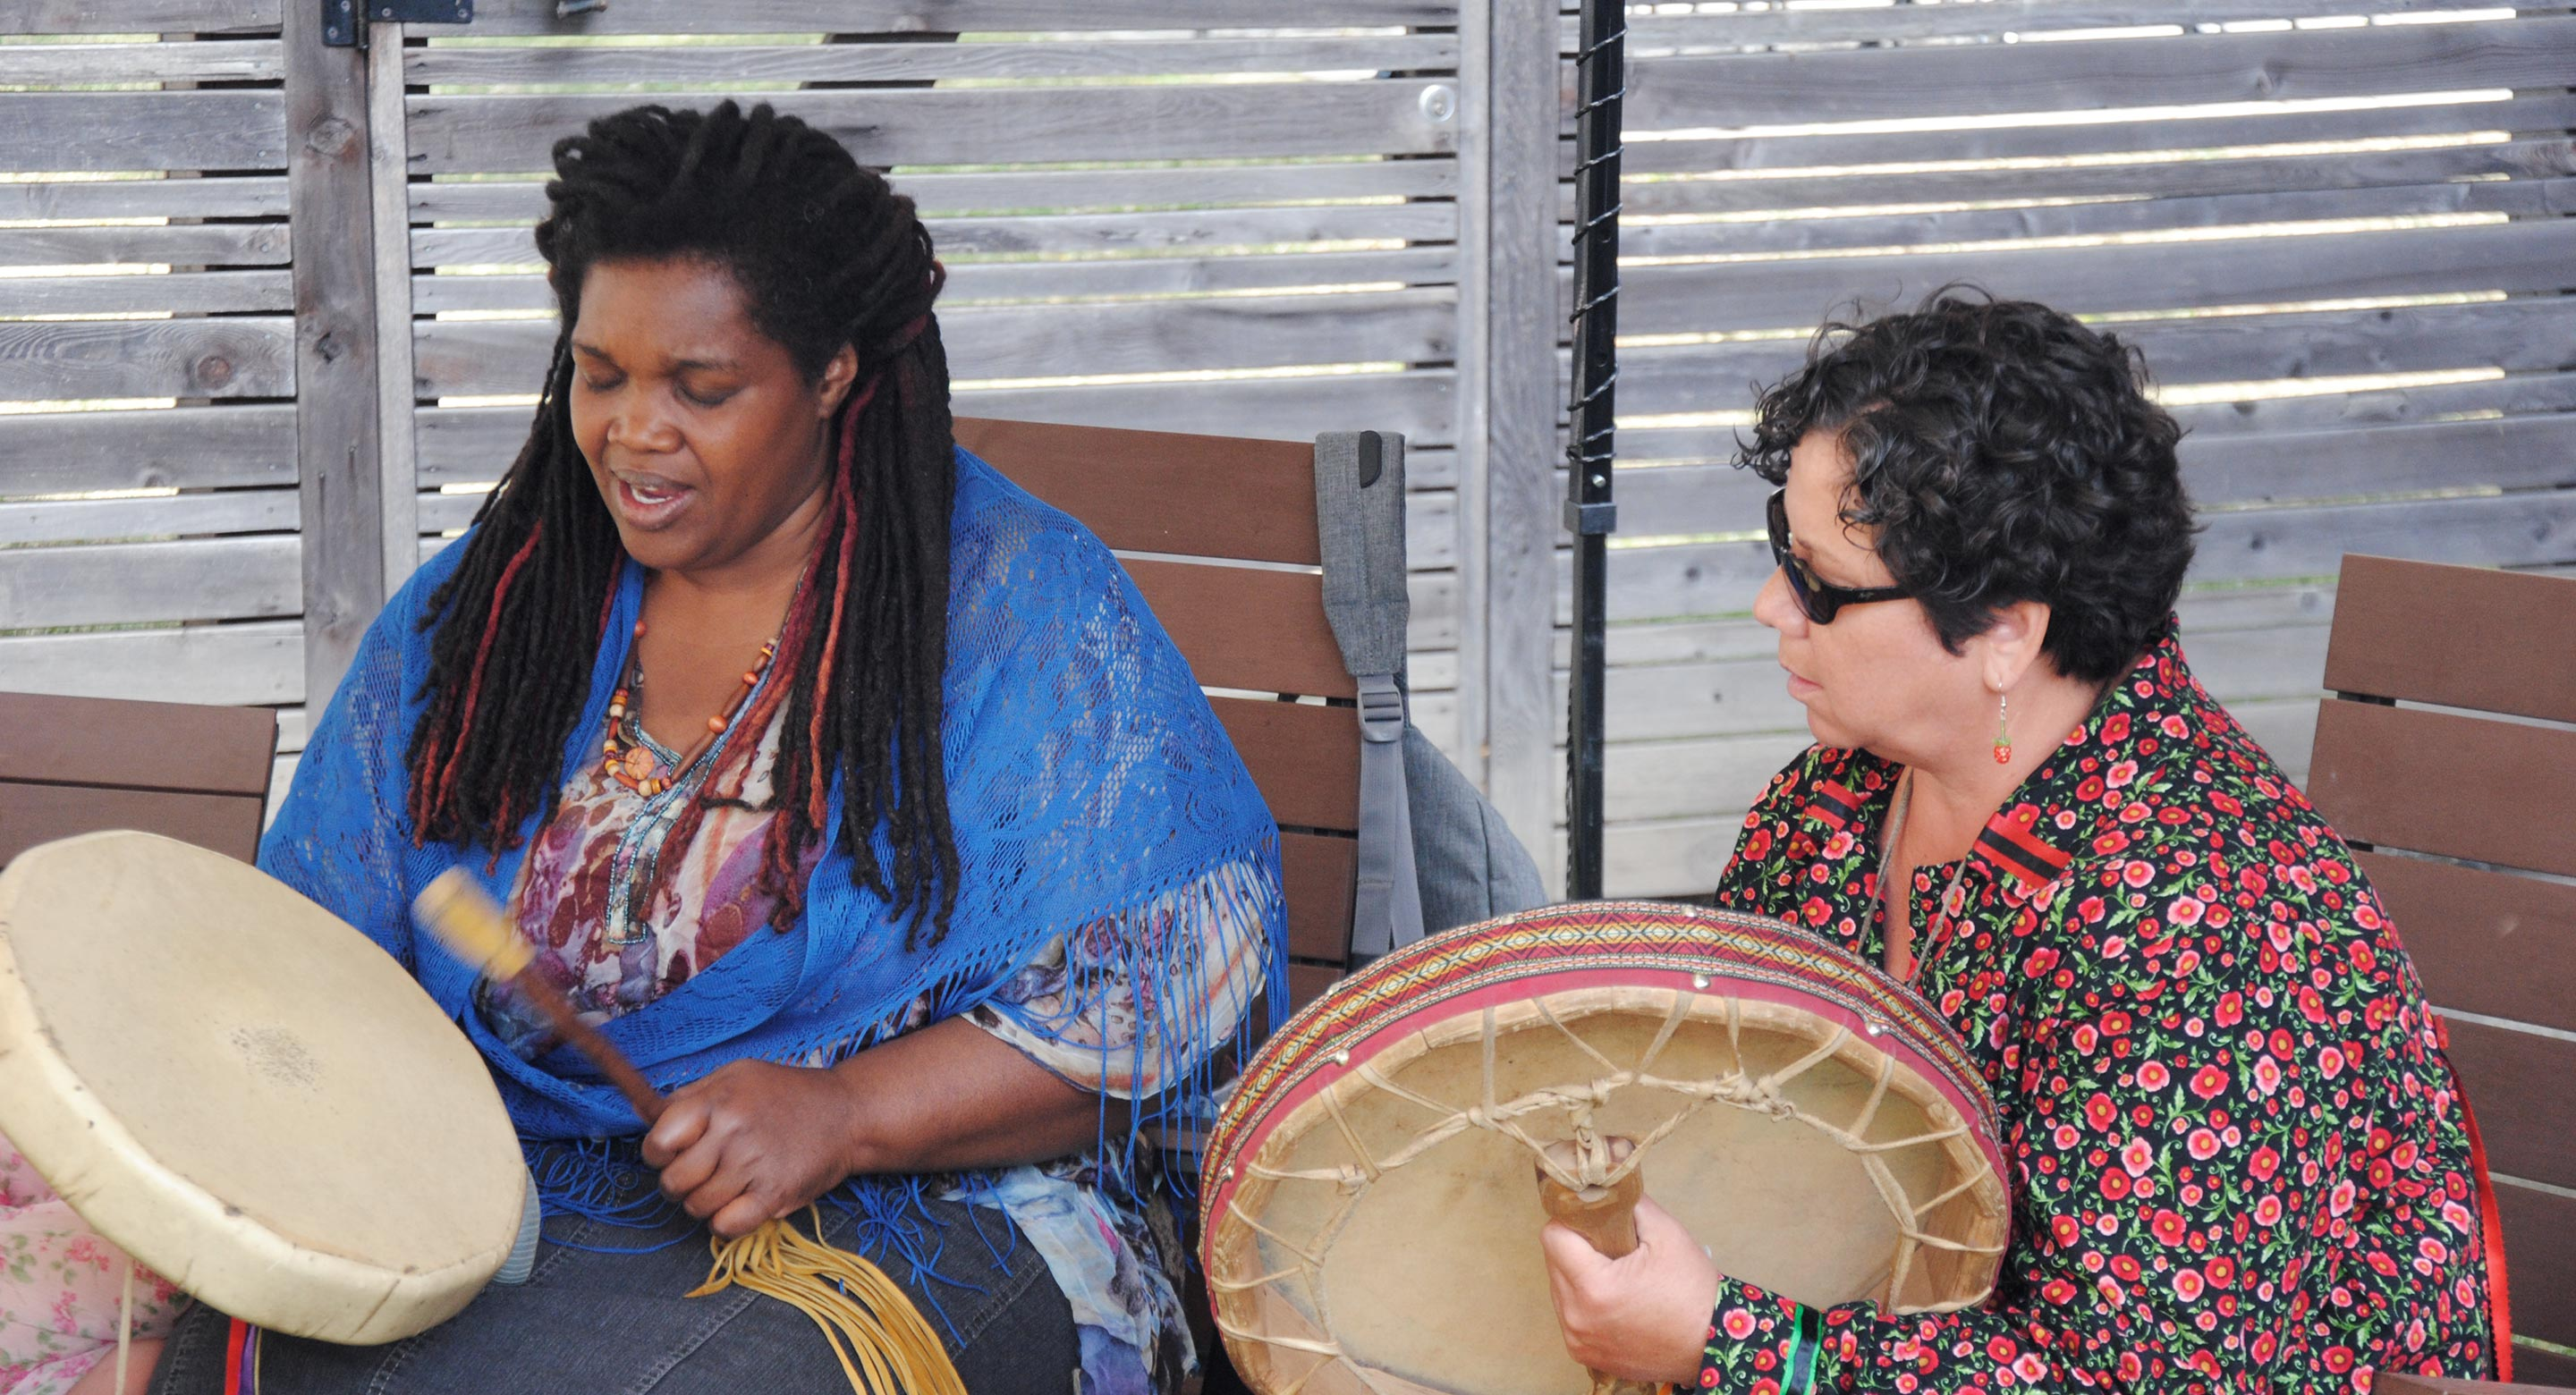 Michele Perpaul and Elder Cynthia White celebrate the opening of CAMH's Ceremony Grounds in 2016 with a drum circle.